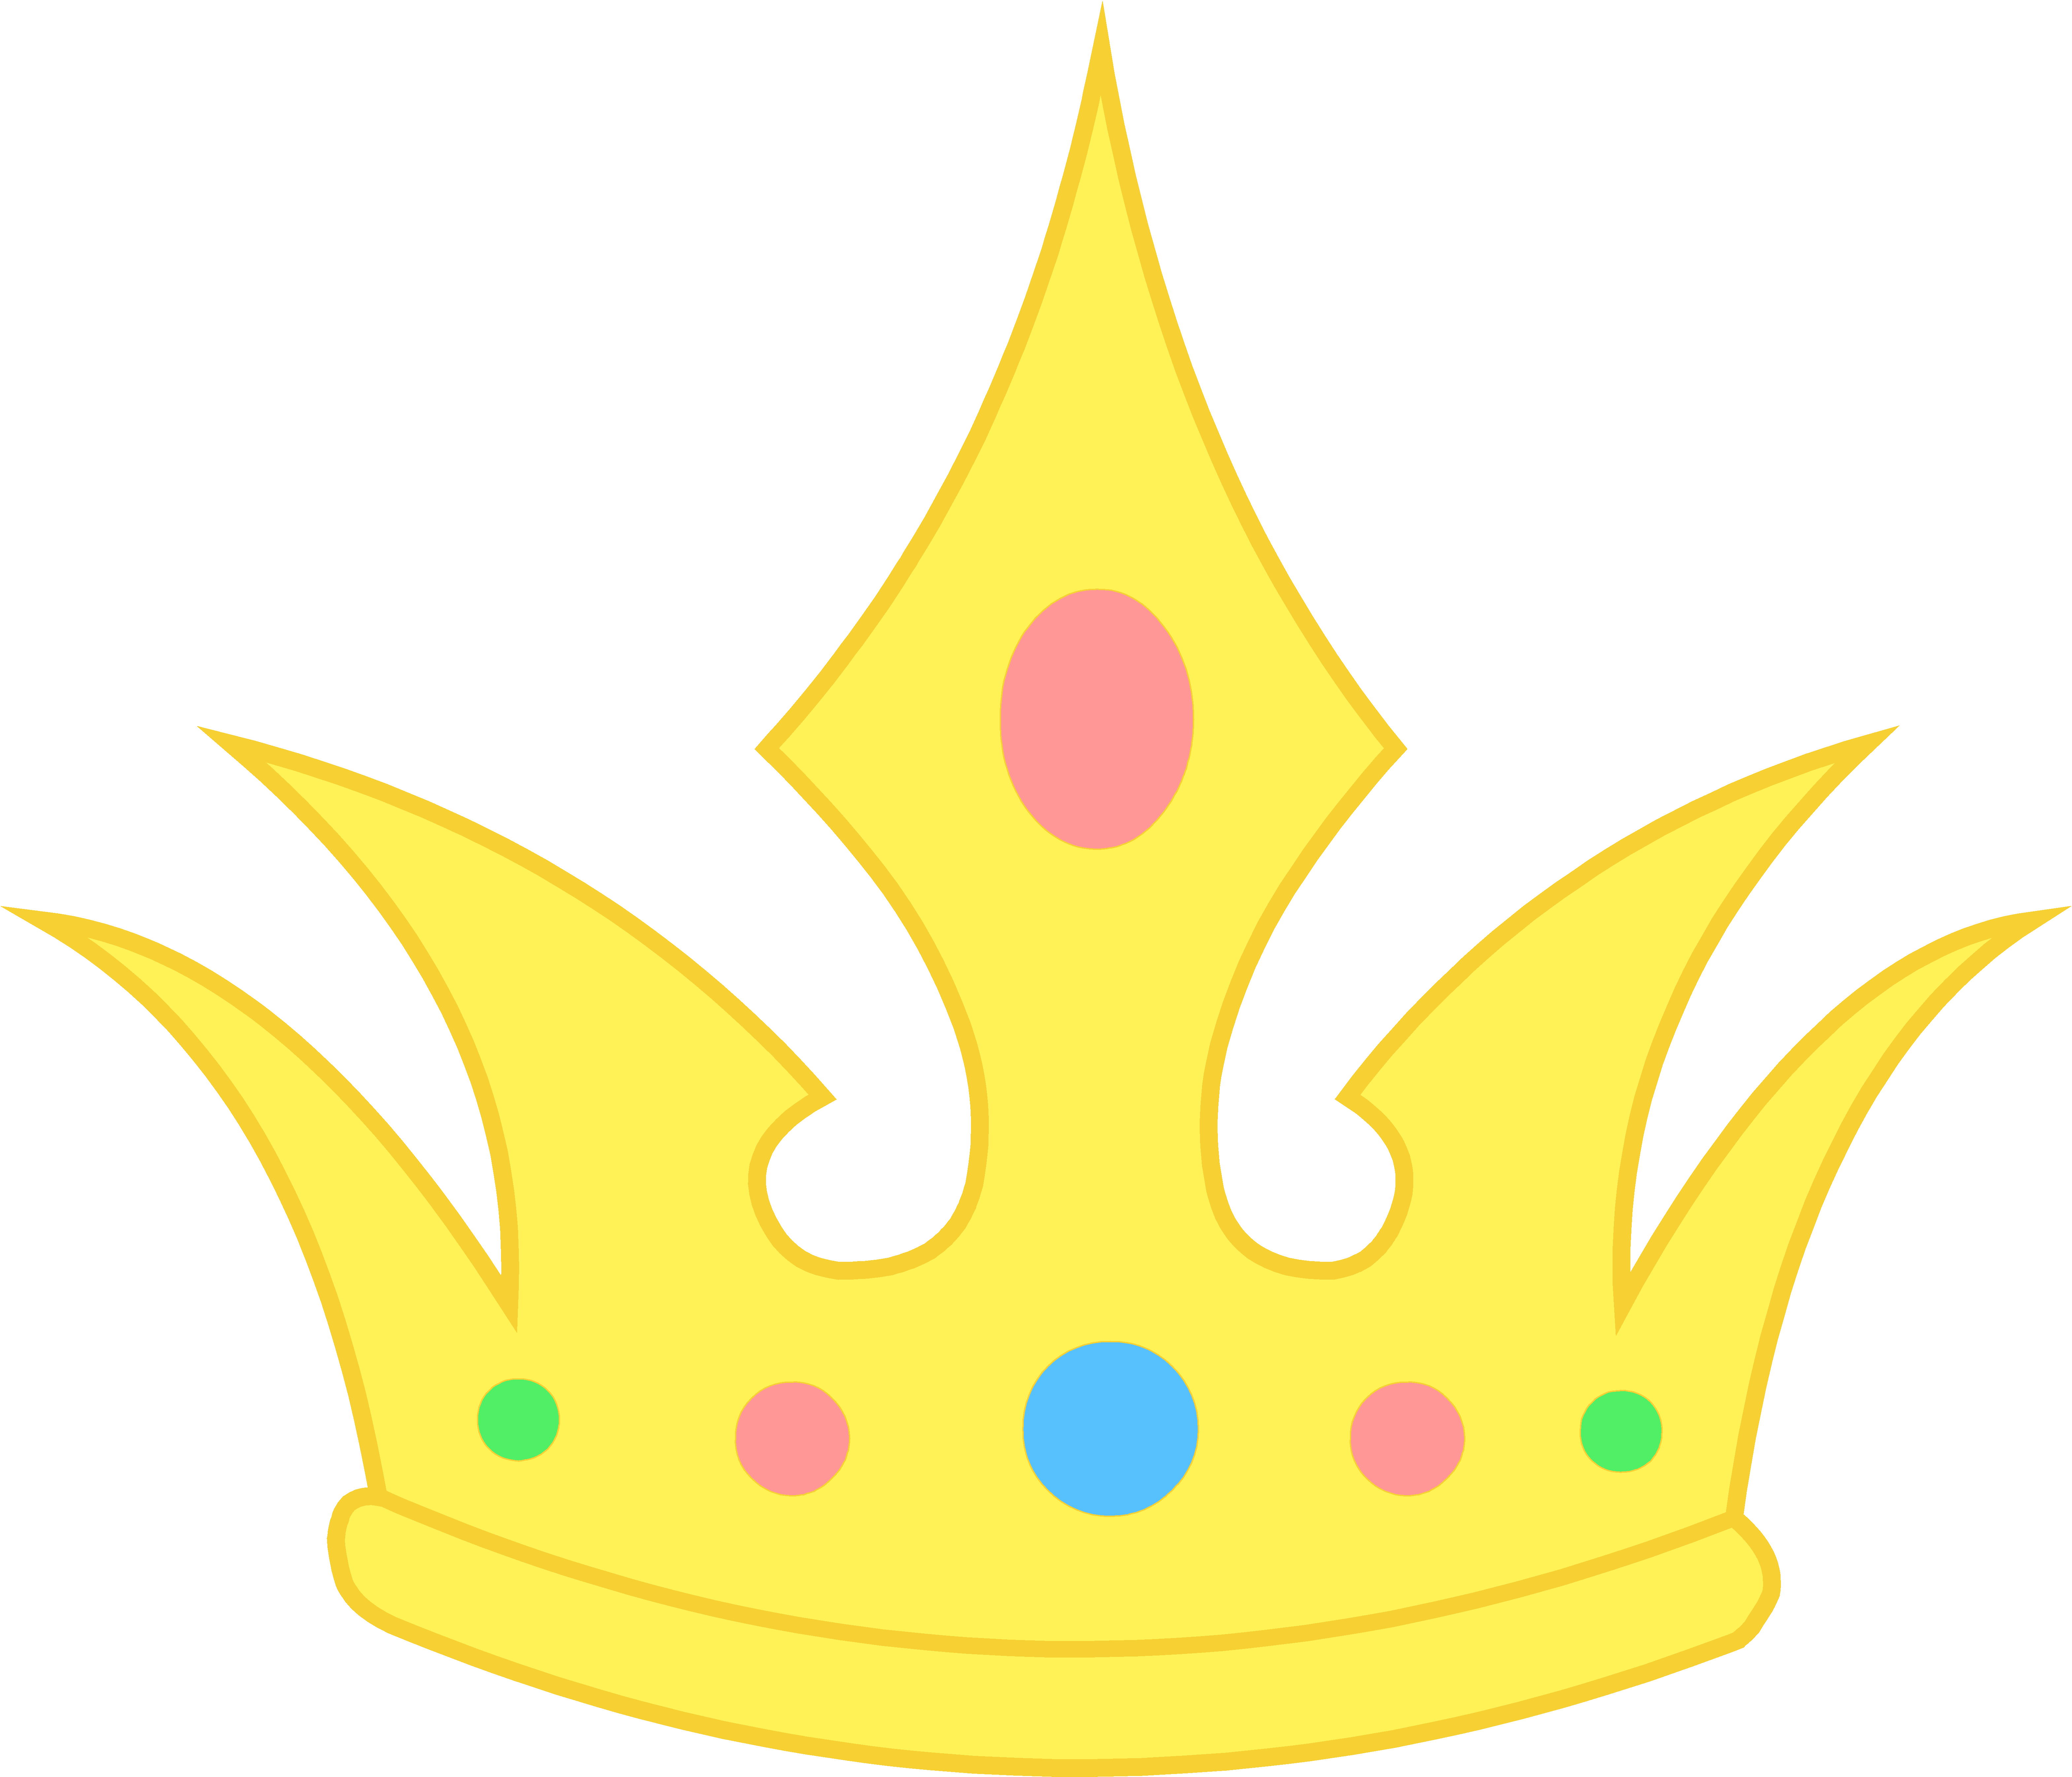 2d clipart crown jpg royalty free stock Simple Tiara Clip Art | Clipart Panda - Free Clipart Images jpg royalty free stock